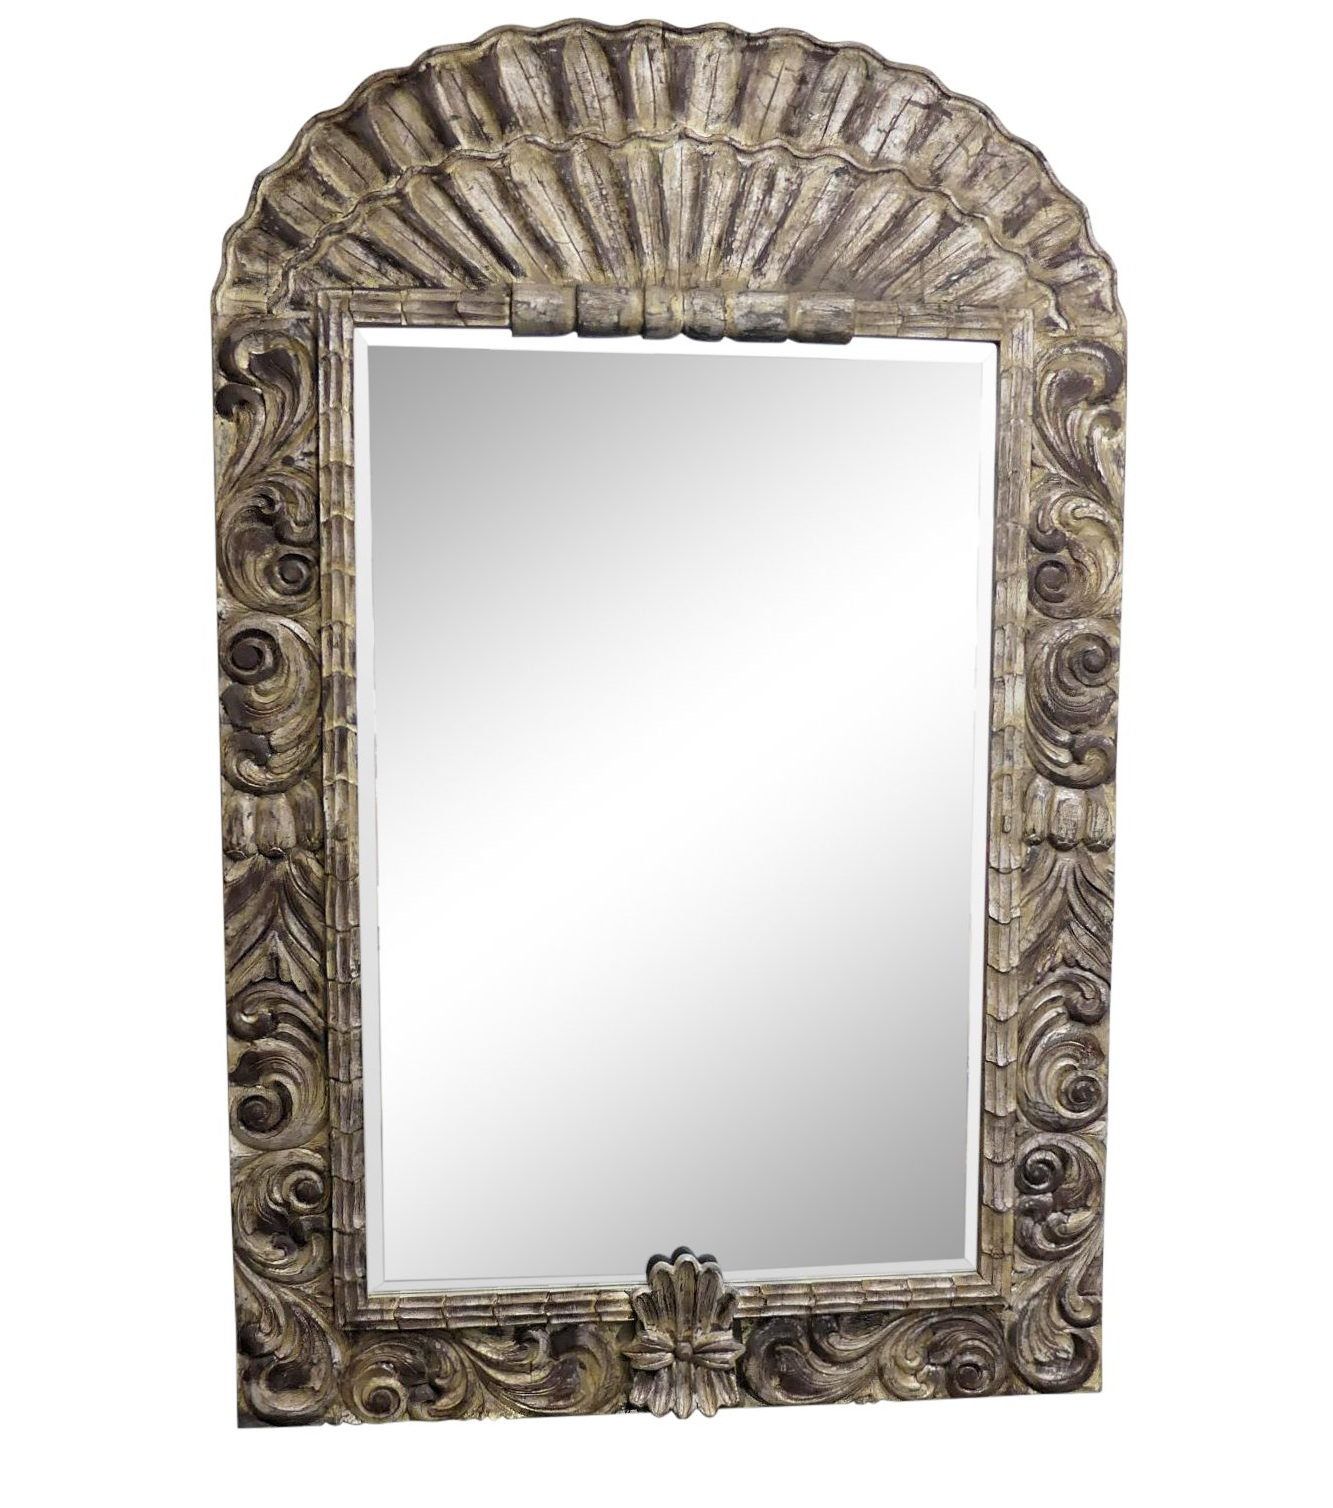 SOLD LaBarge Grand-Scale Carved Wood Mirror